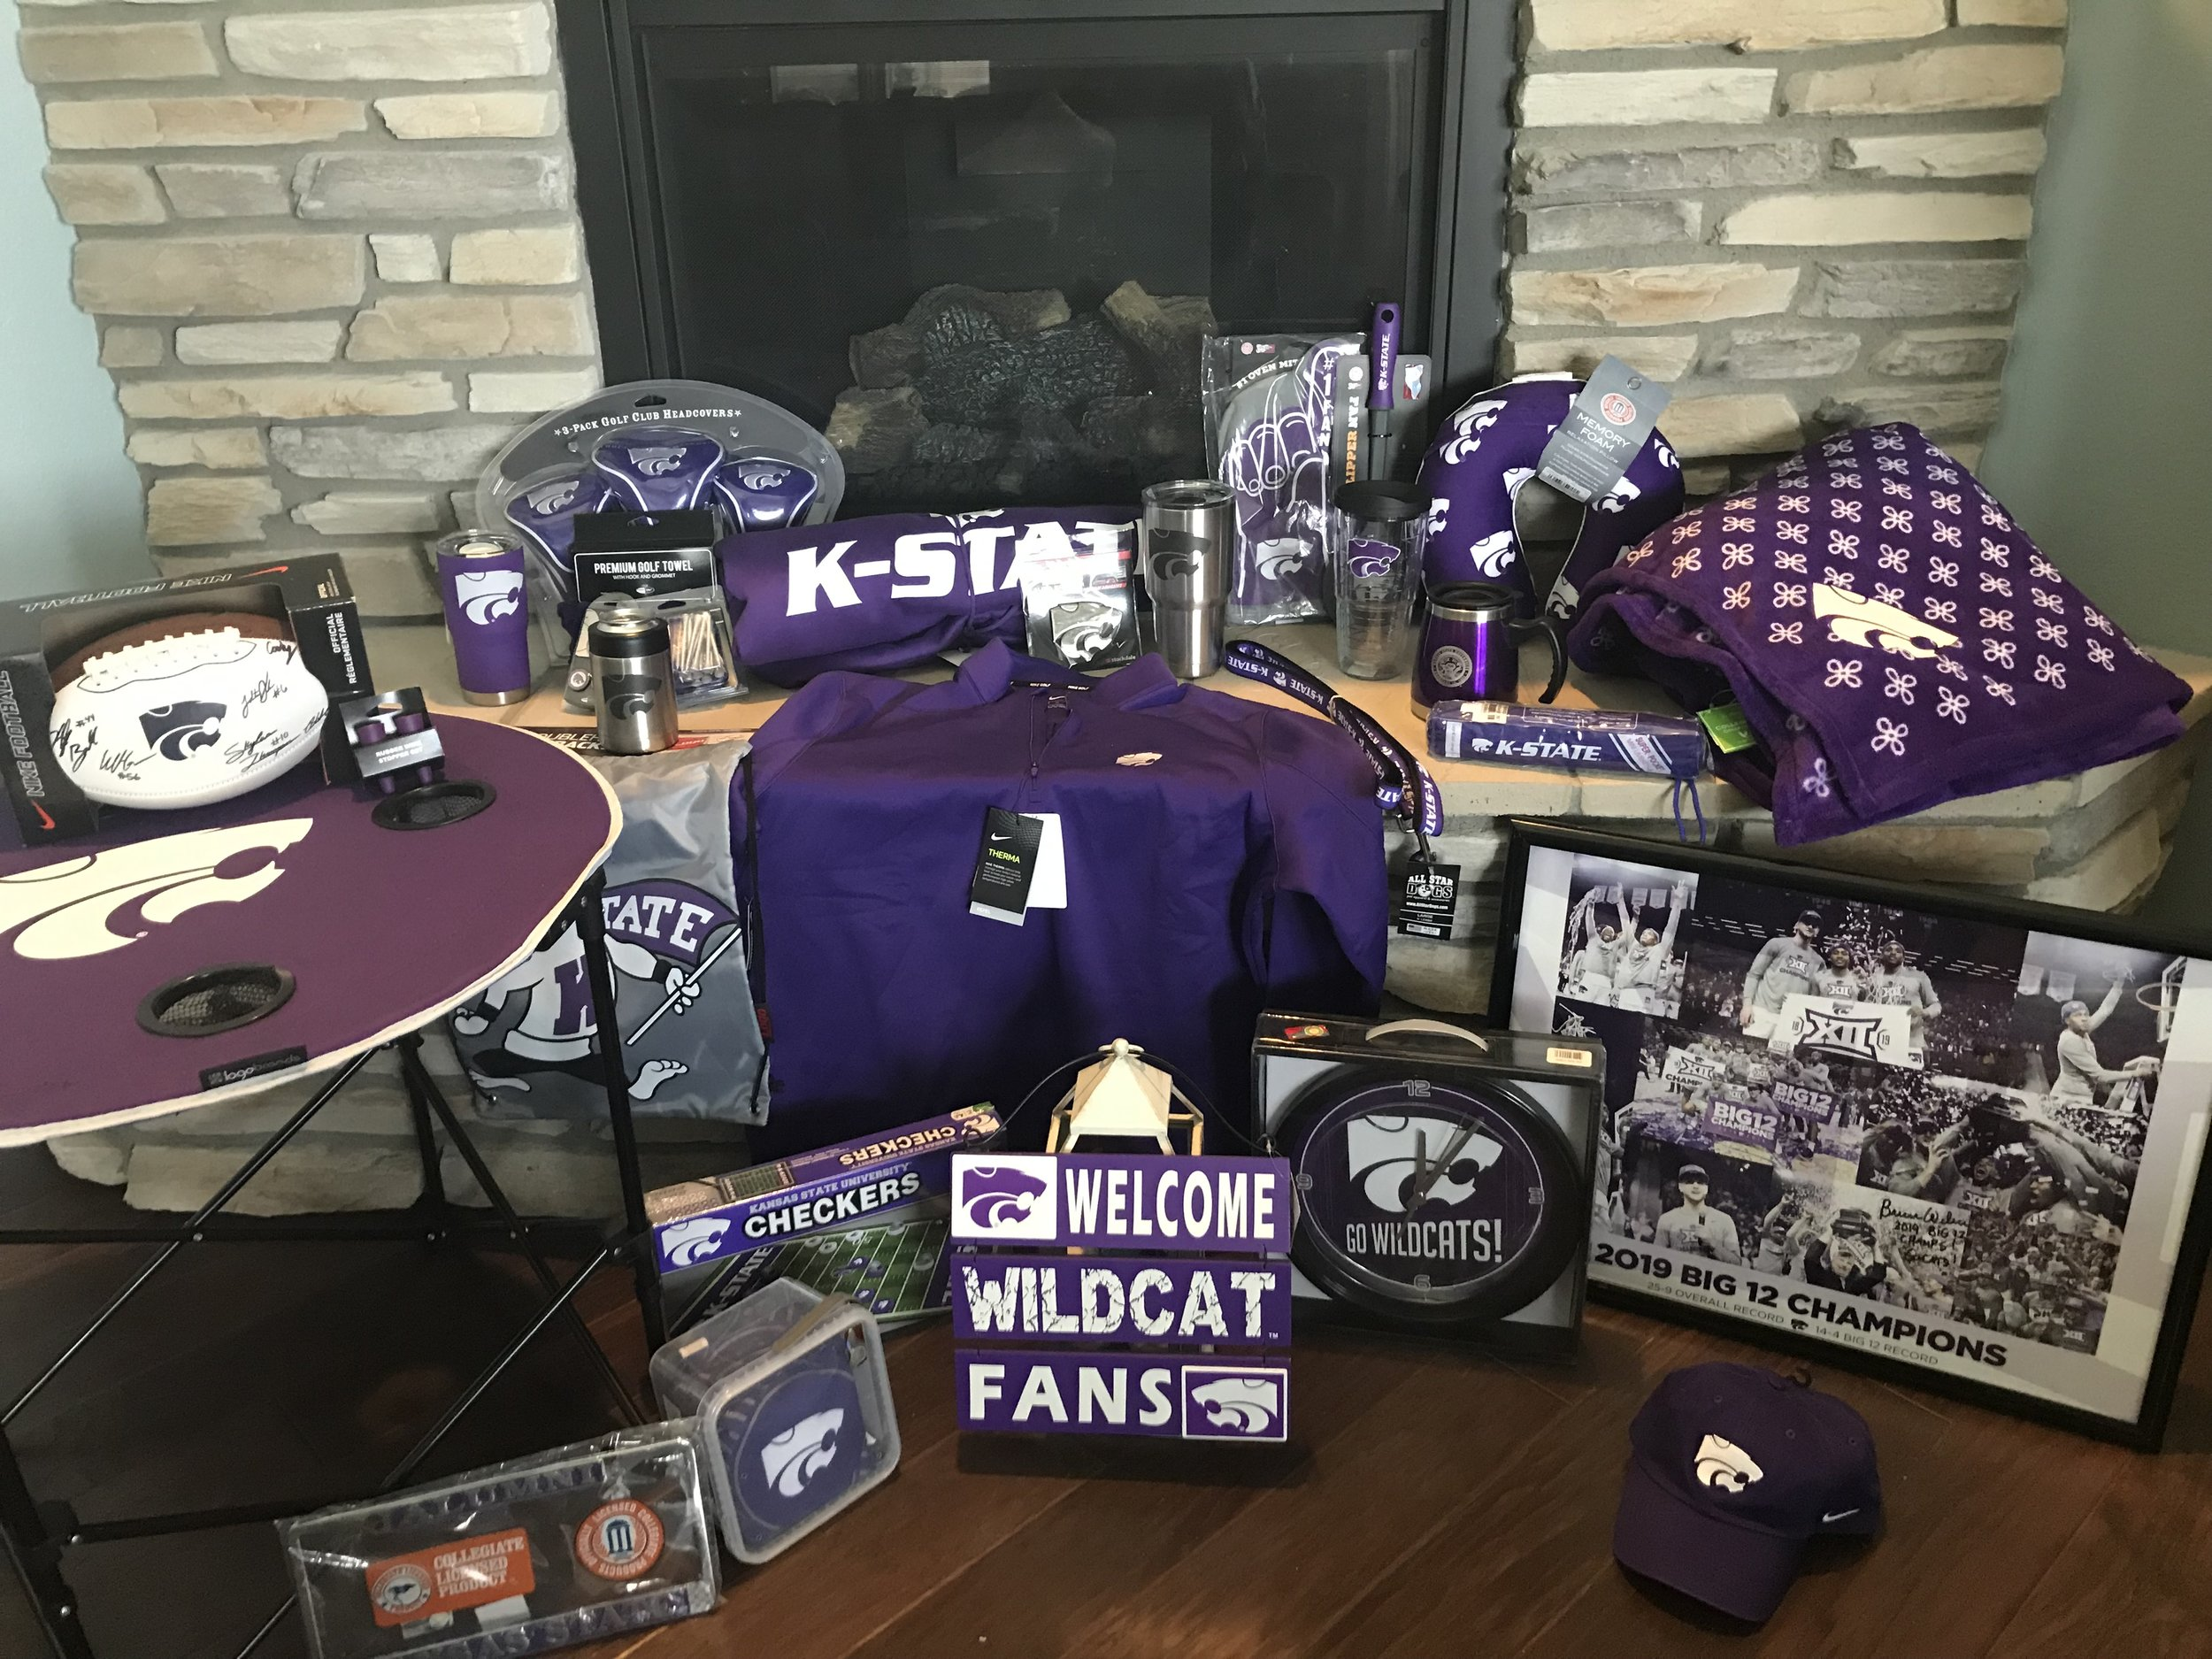 2019 Silent Auction Items   Clockwise from upper left: Powercat camp table, Signed football, Wine bottle stoppers, Powercat purple tumbler, Powercat aluminum can cooler, Classic Willie flag, 3-Pack Powercat golf wood head covers, Powercat golf towel, K-State throw blanket, Powercat Nike pullover, Powercat car emblem, Powercat silver tumbler, #1 Powercat oven mitt, K-State dog leash, Powercat clear tumbler, Spatula, K-State seal coffee mug, Memory foam neck pillow, K-State umbrella, Powercat blanket, Signed 2019 Big 12 Champions poster, Powercat cap, Powercat Go Wildcats clock ,Powercat Welcome's Wildcat Fans sign, K-State checkers game, Powercat beanbag toss game, Kansas State Alumni vanity license plate cover.